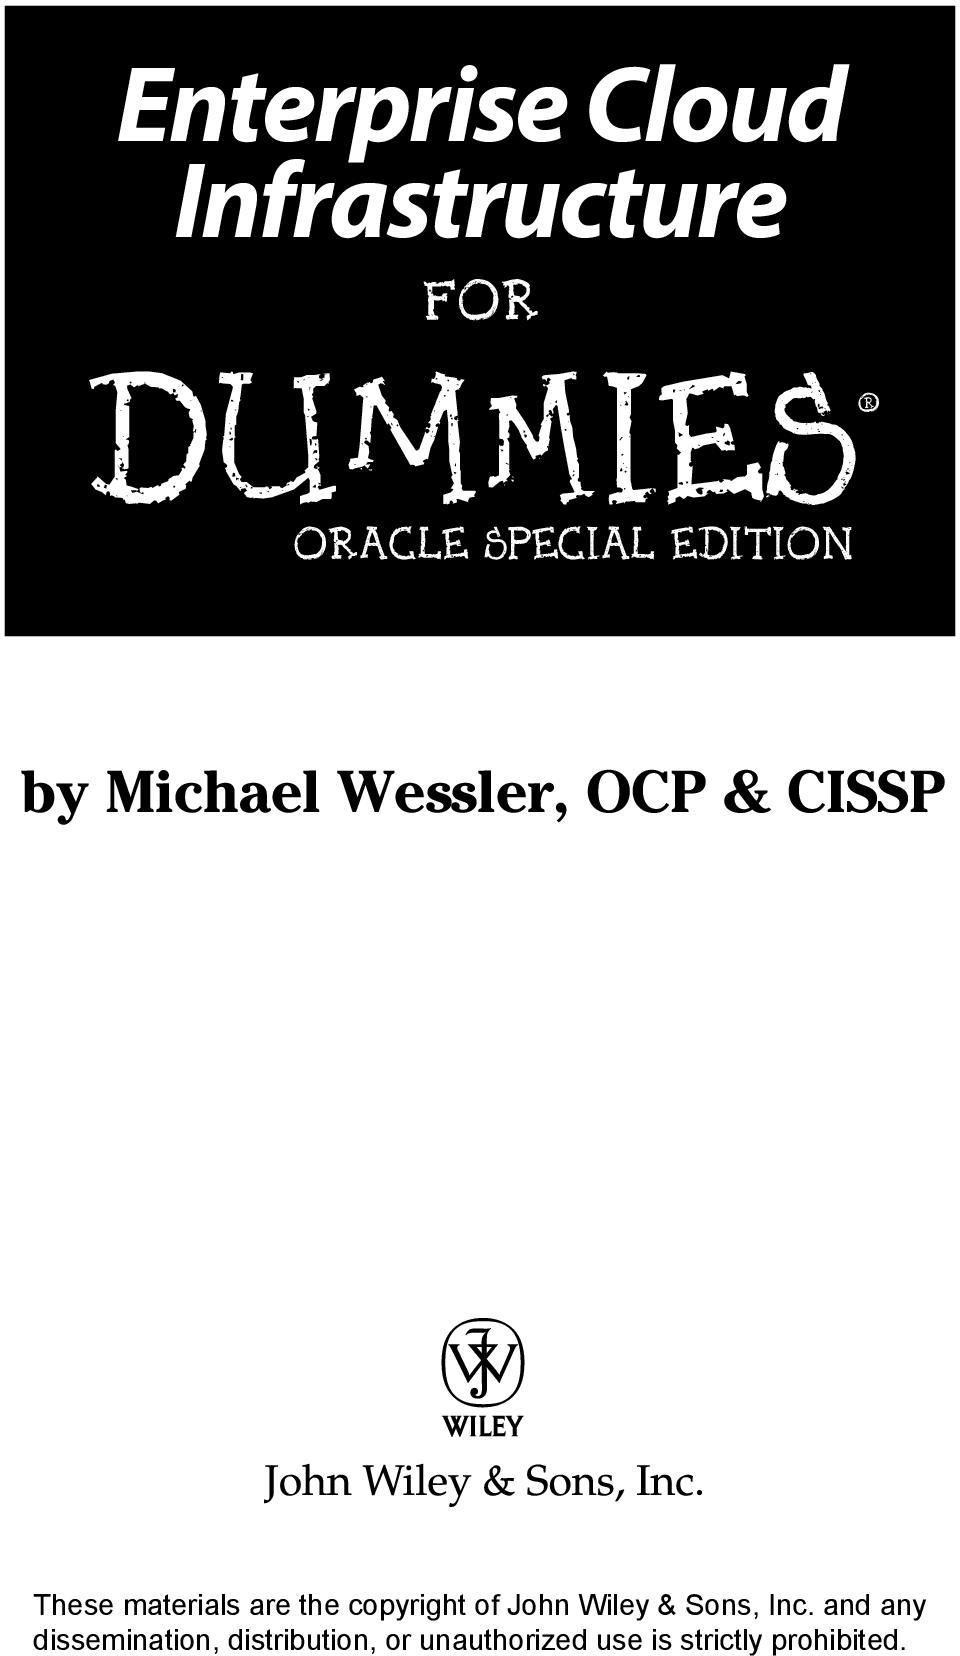 DUMmIES ORACLE SPECIAL